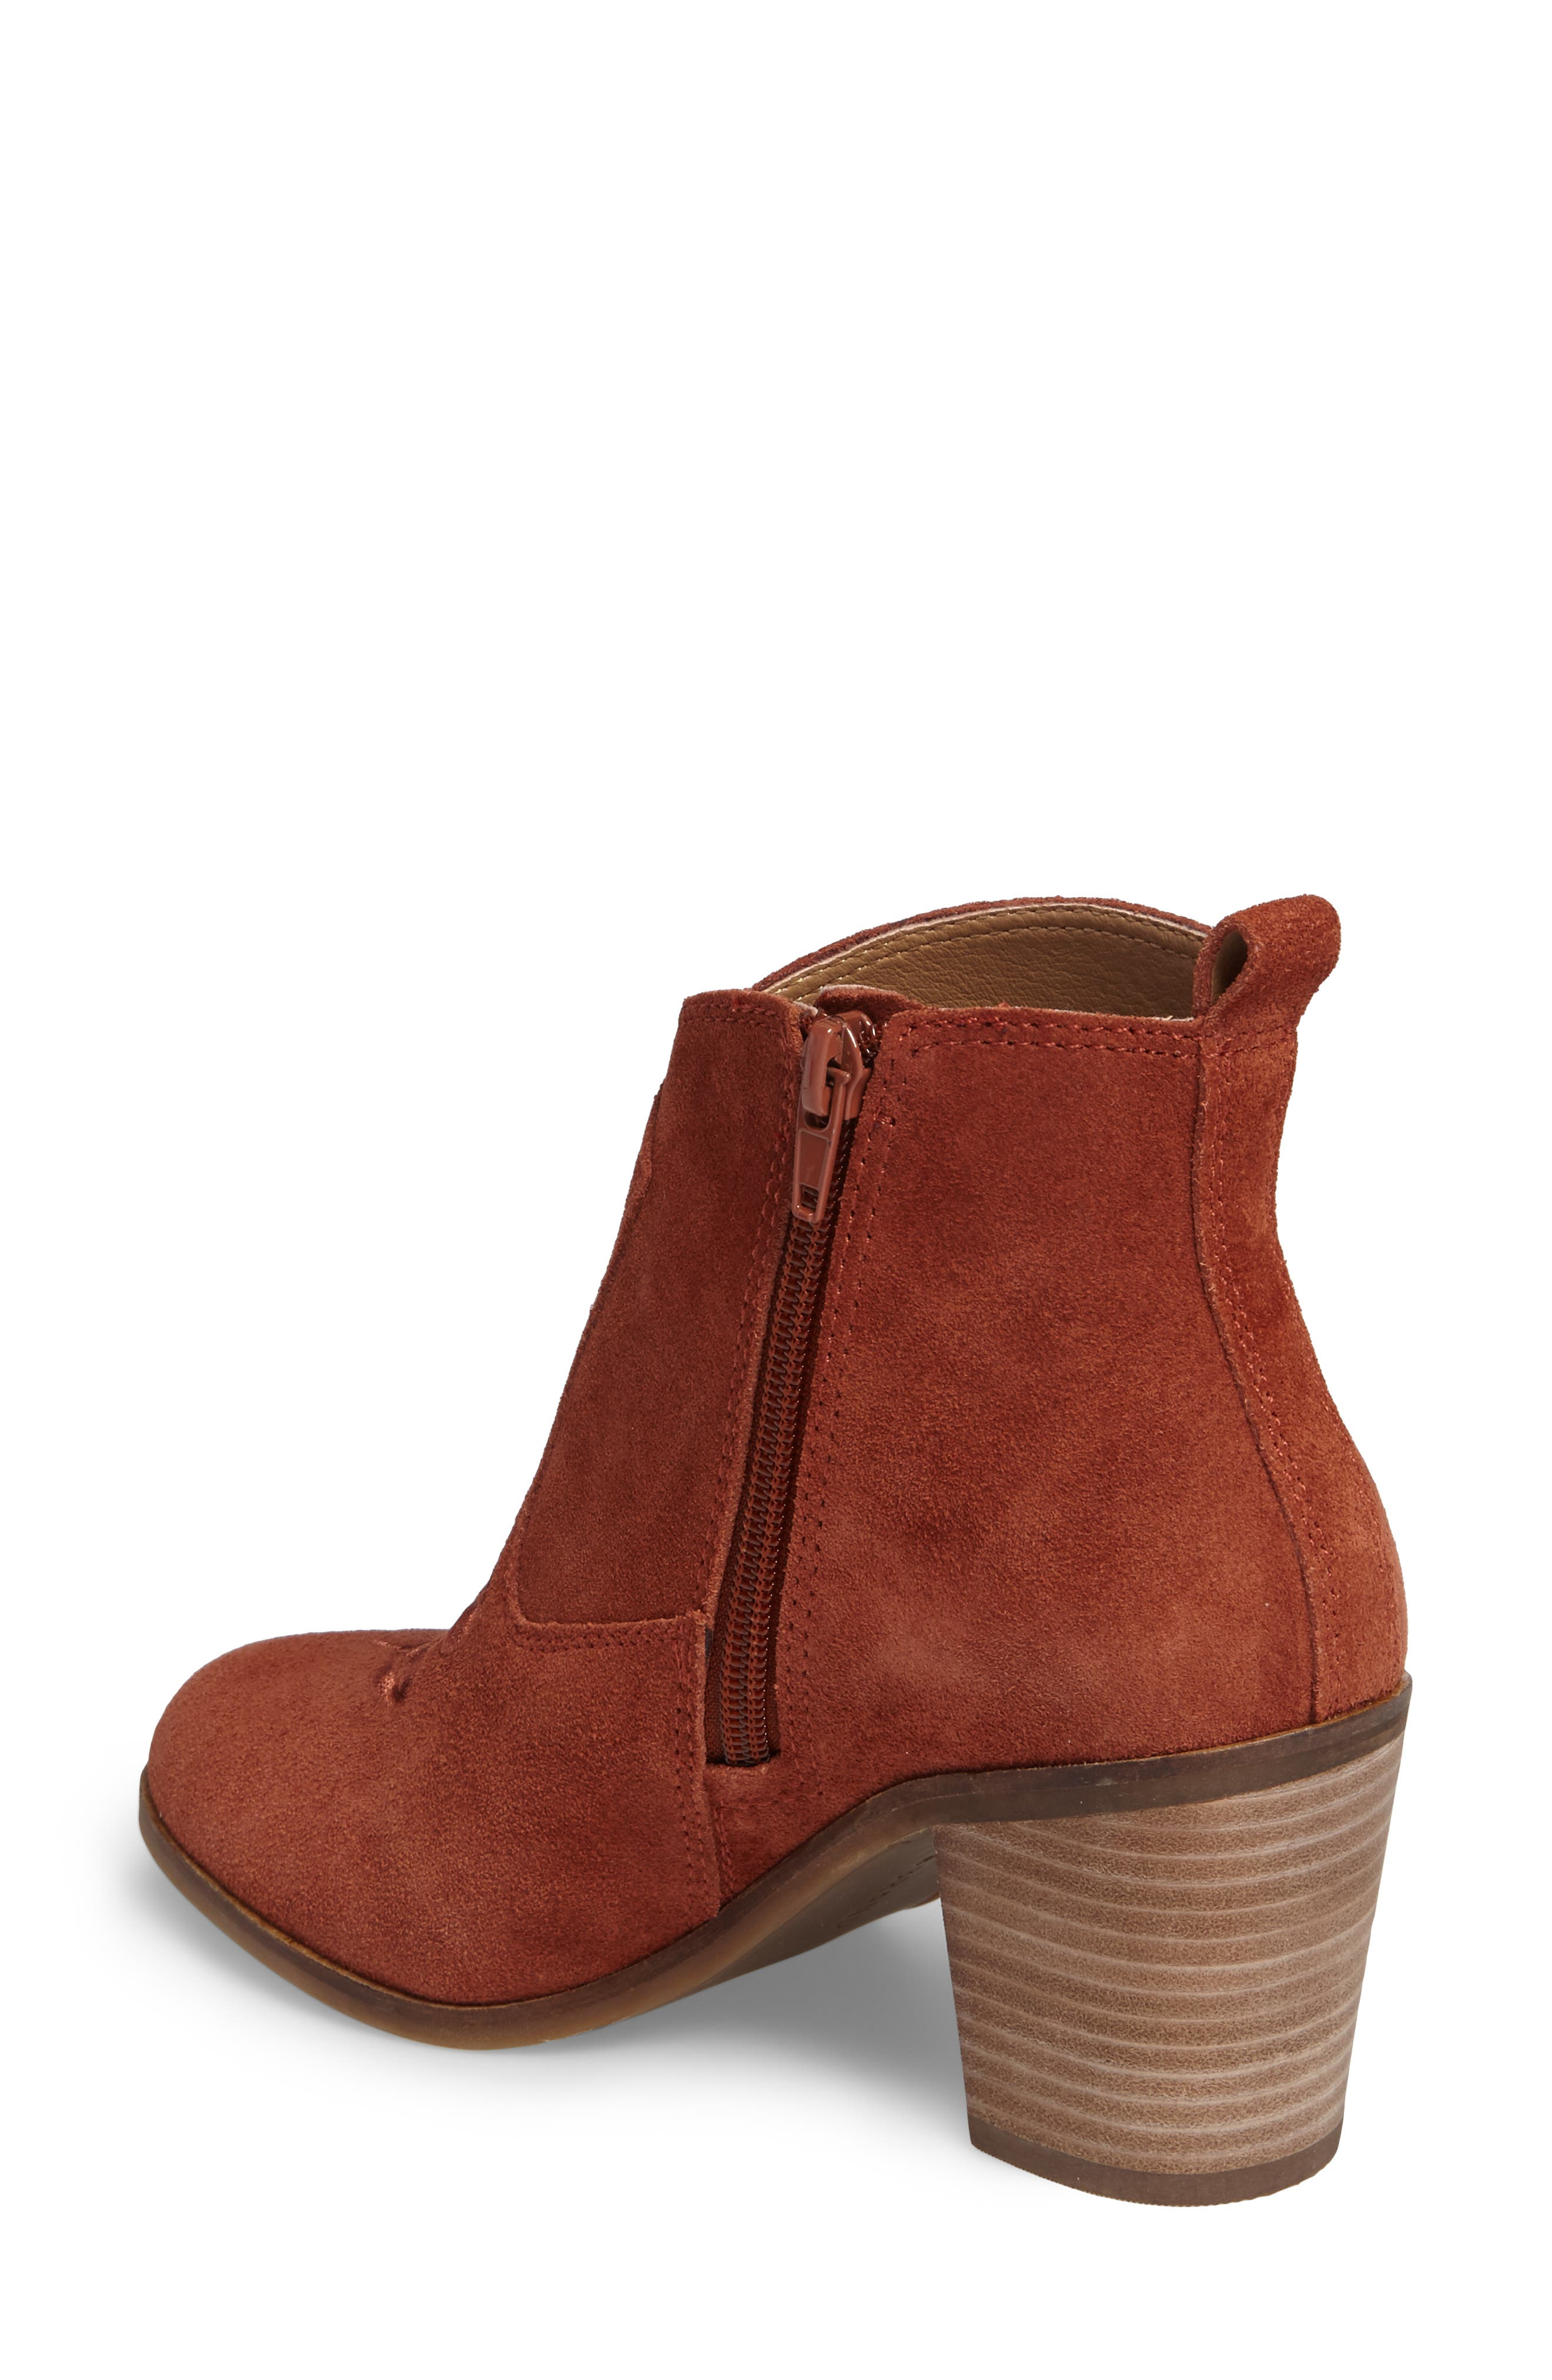 Pexton Embroidered Bootie,                             Alternate thumbnail 2, color,                             Red Oak Suede